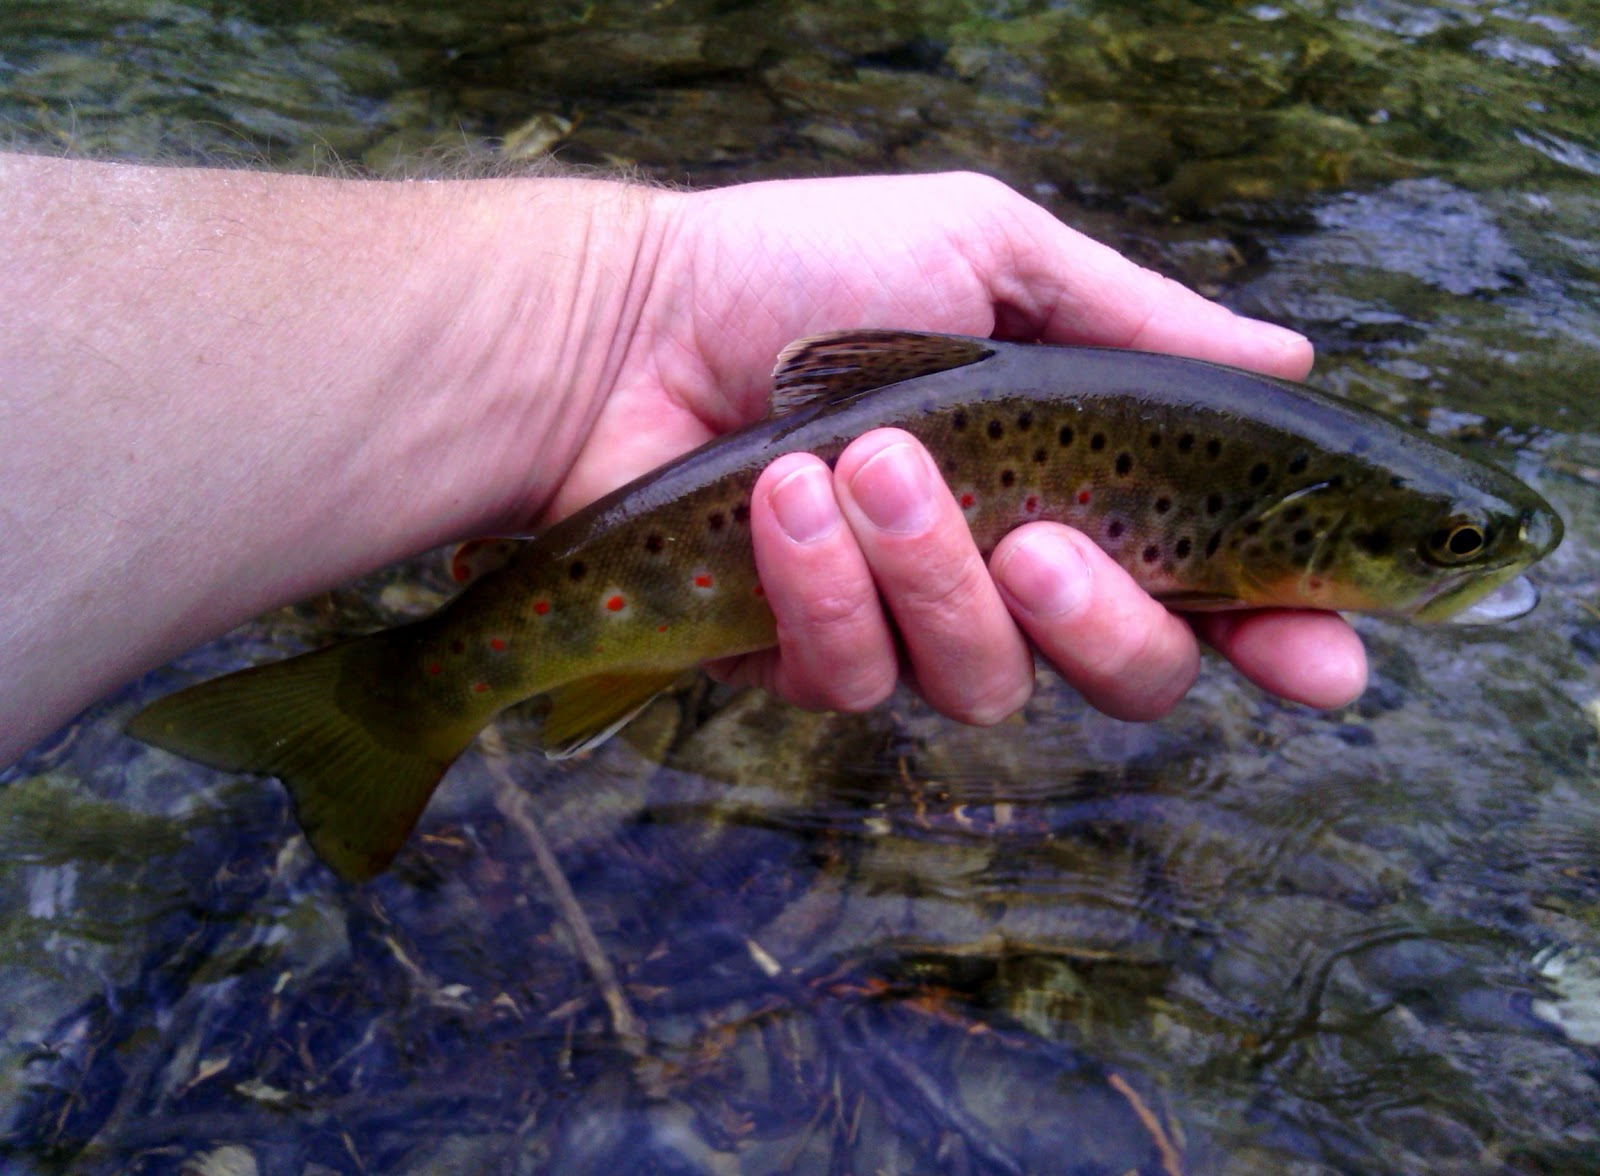 Tennessee fly fishing smoky mountain spring saftey tips 2013 for Smoky mountain fly fishing